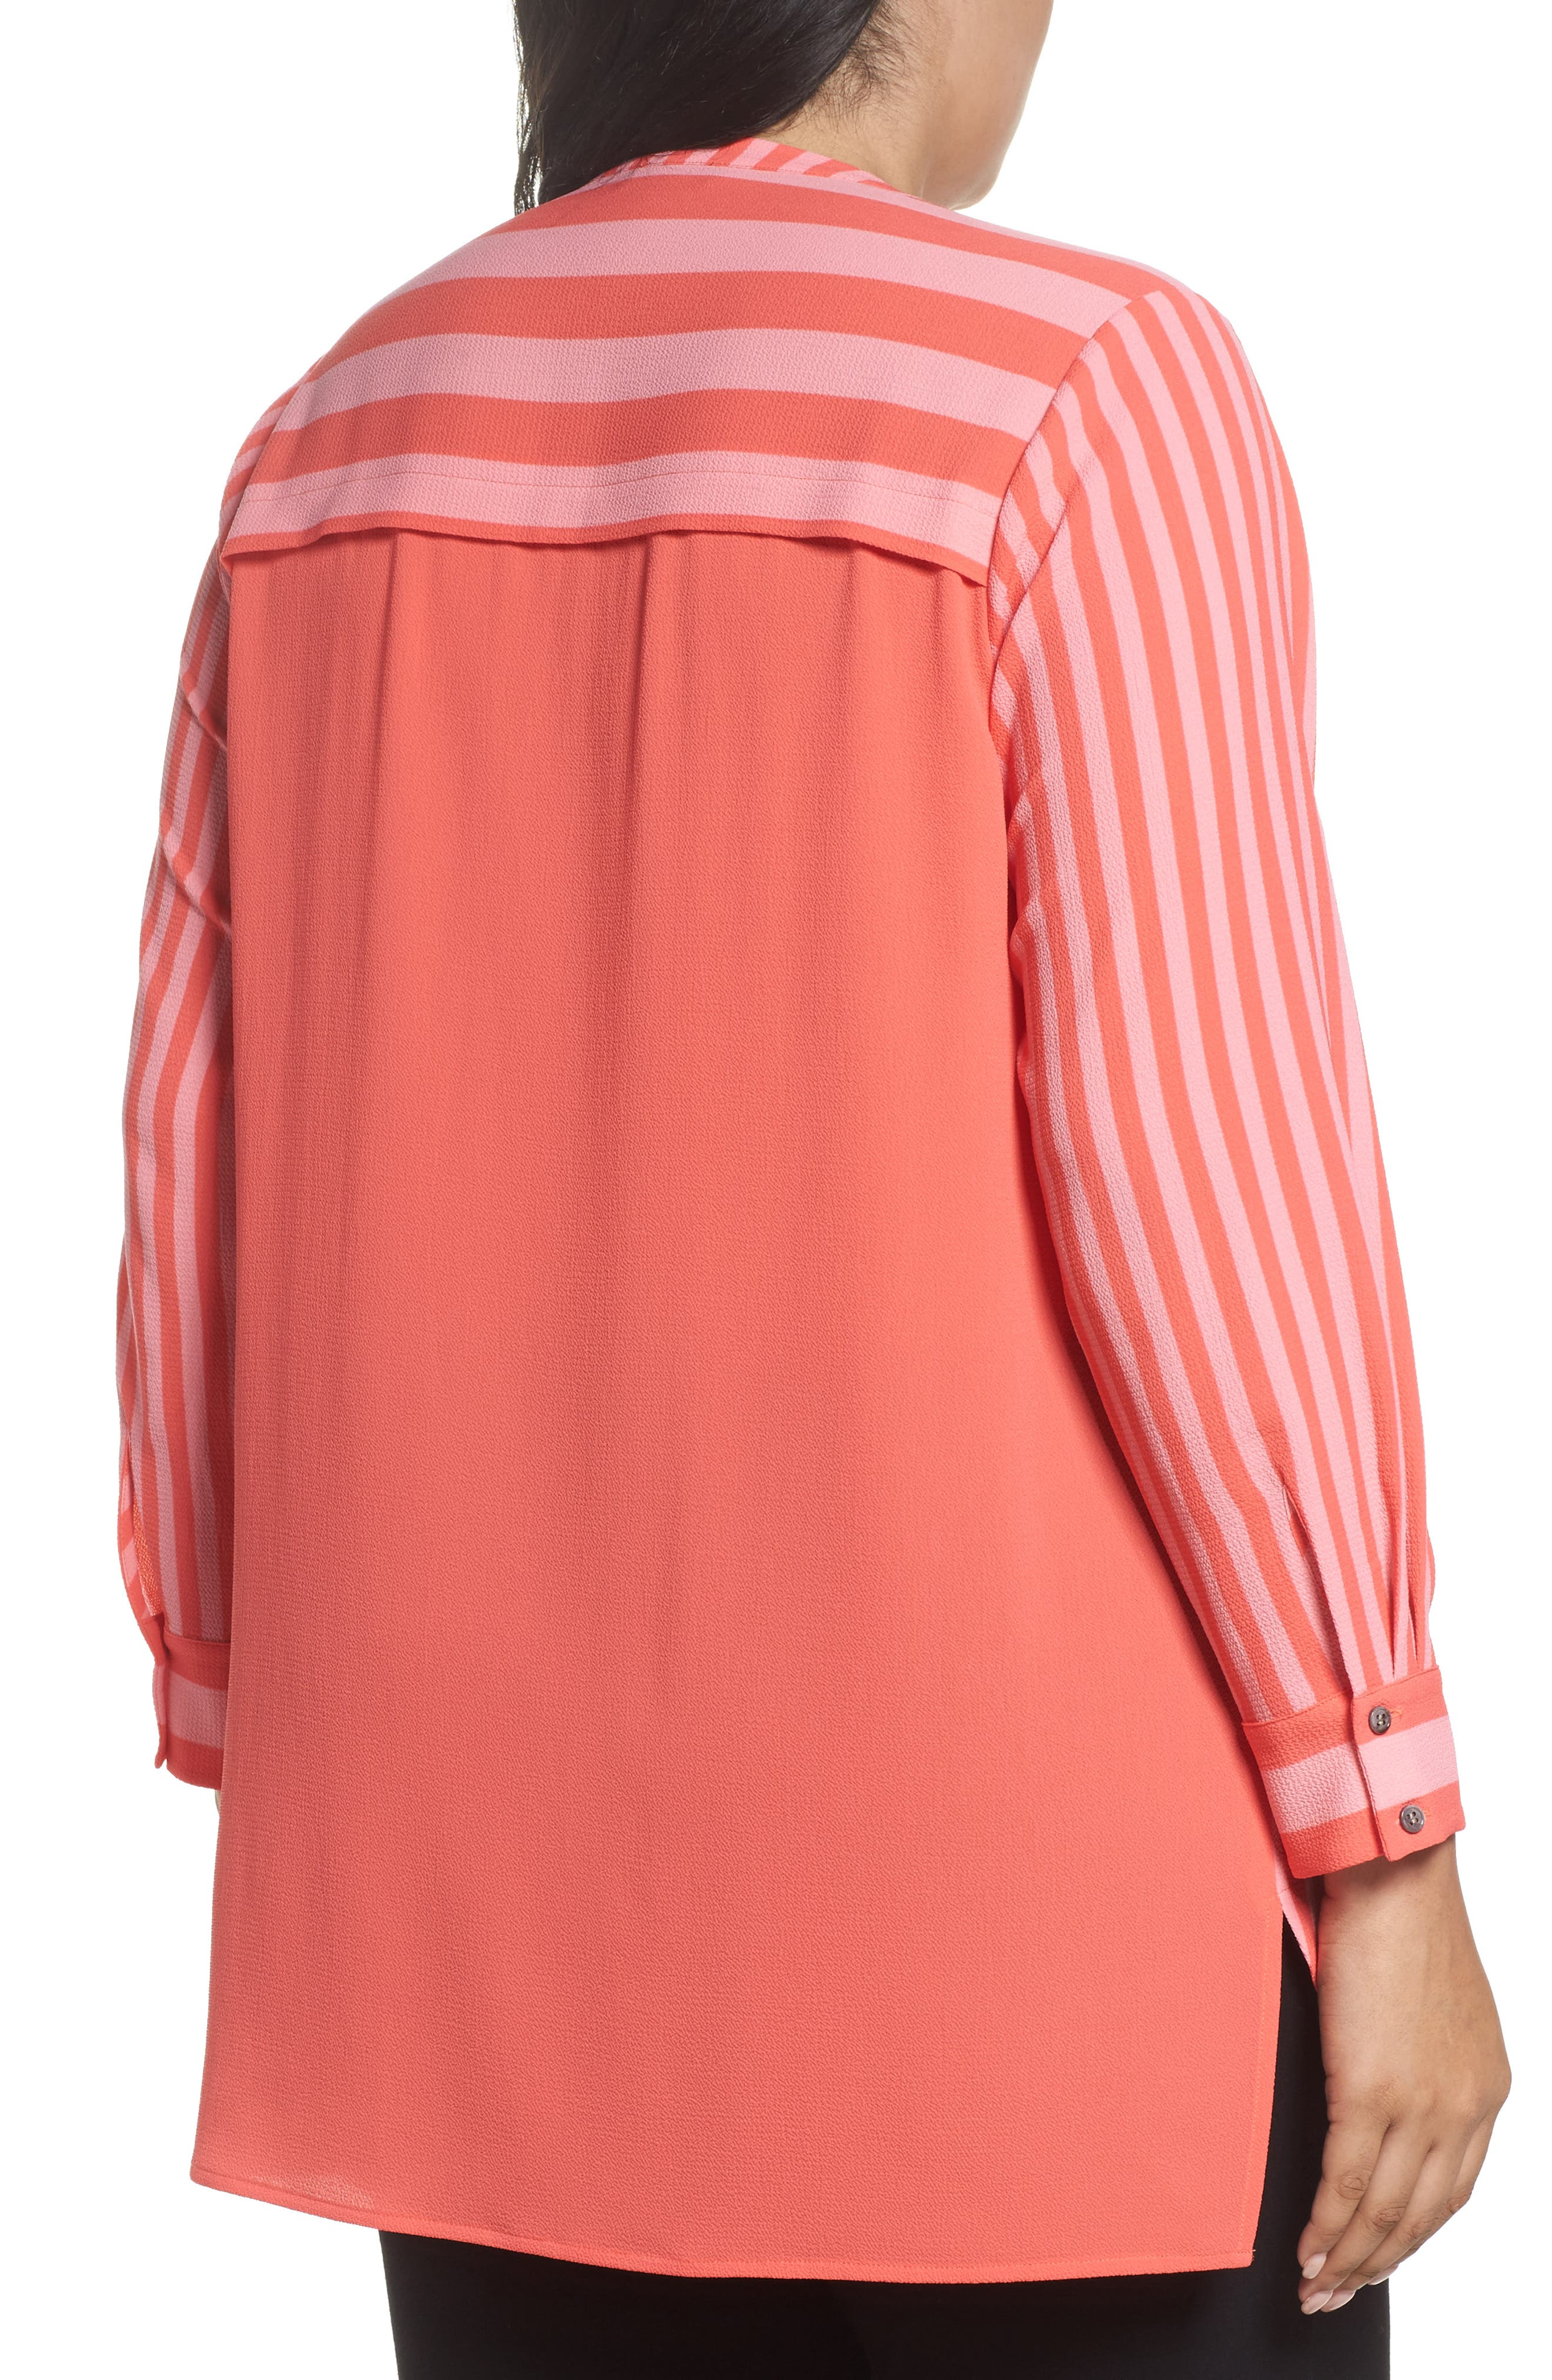 Alternate Image 2  - Vince Camuto Debut Mixed Media Tunic (Plus Size)